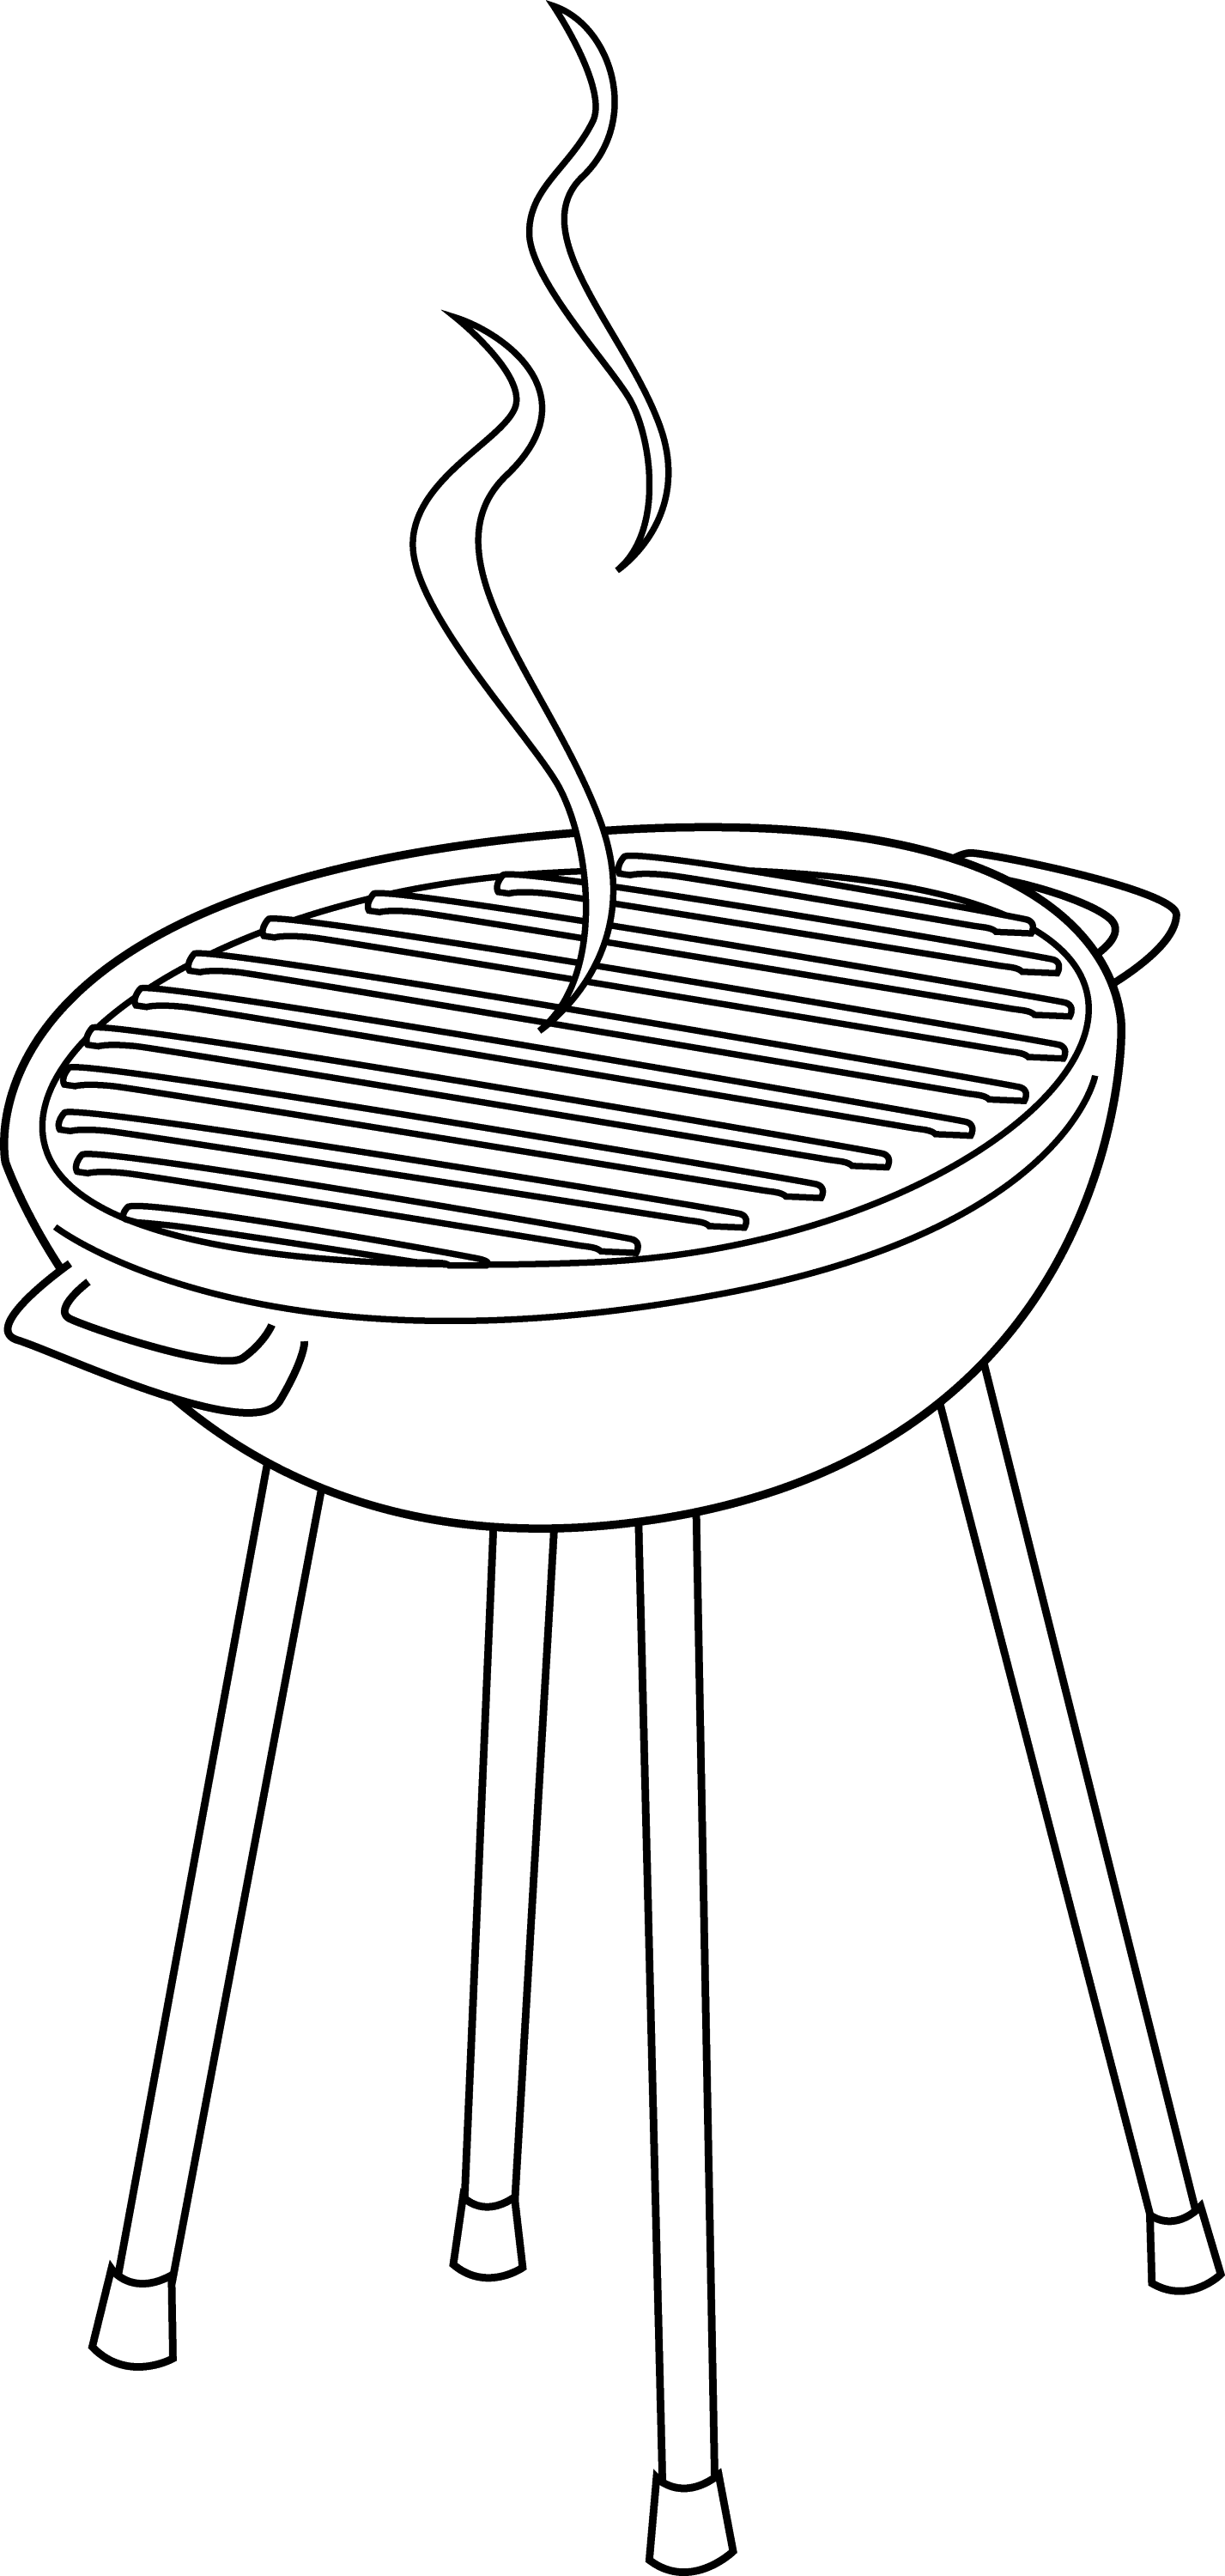 grill coloring page barbeque grill line art free clip art coloring page grill